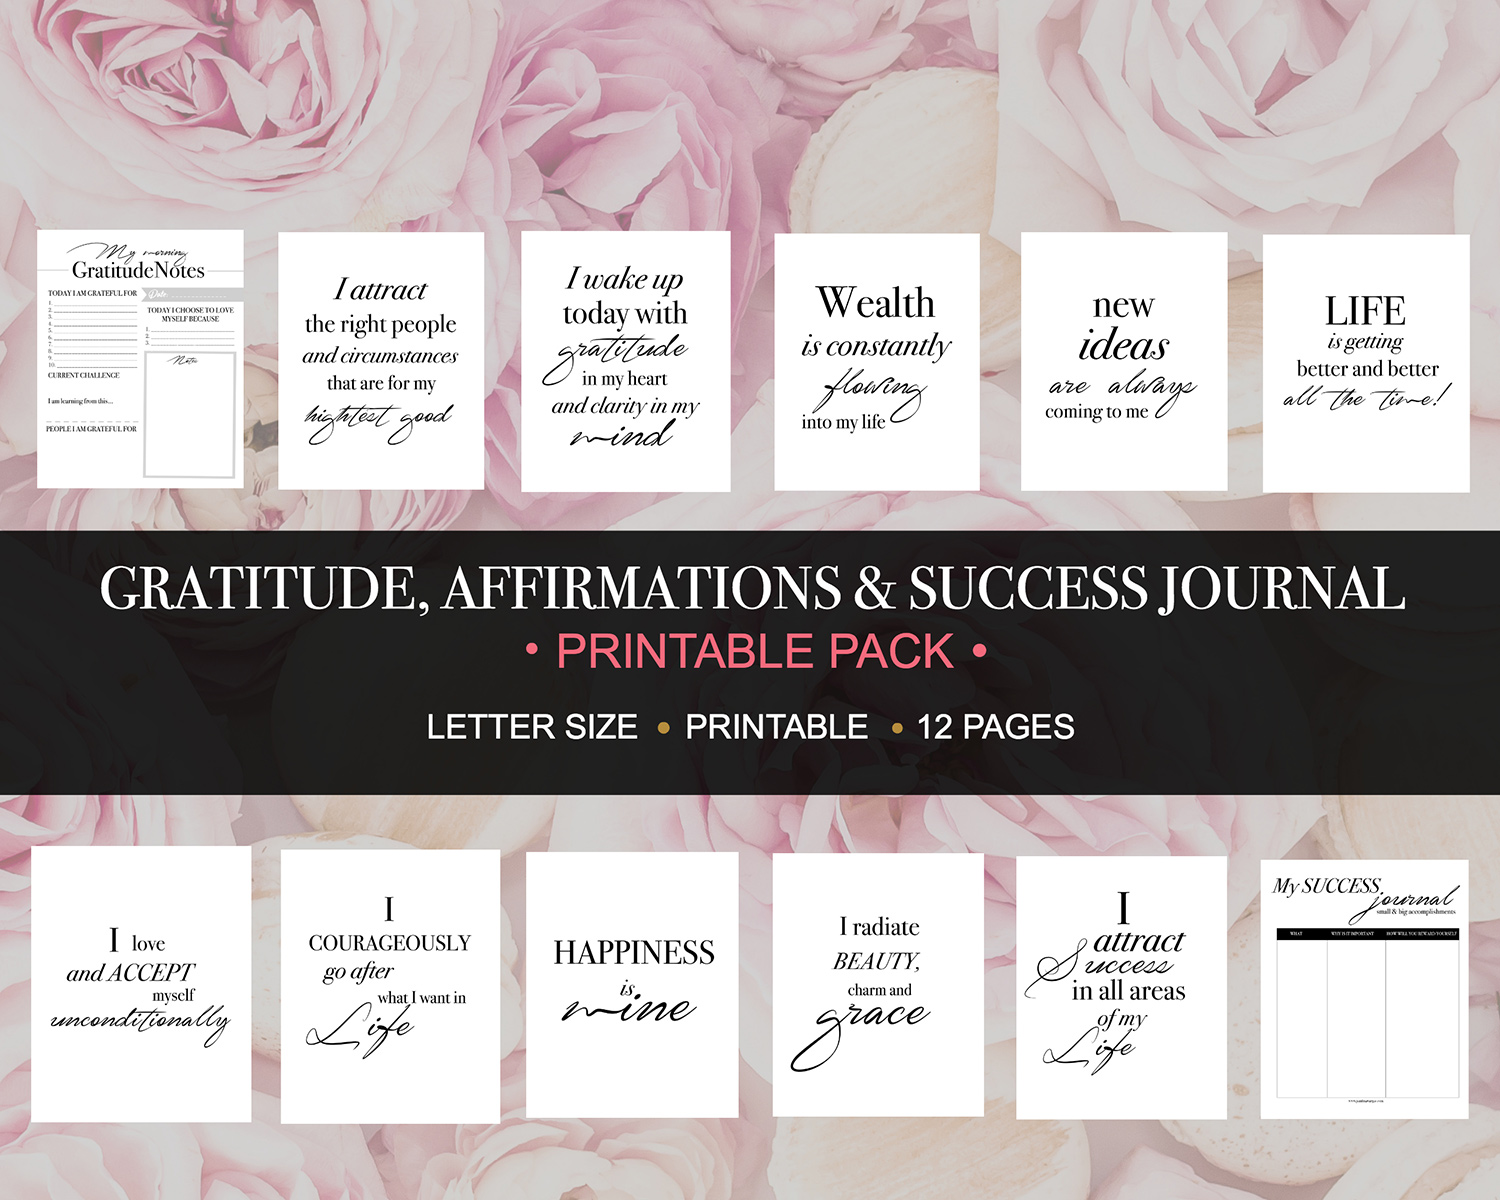 Download the gratitude and affirmation notes paulina vargas gratitude and affirmation printables thecheapjerseys Gallery